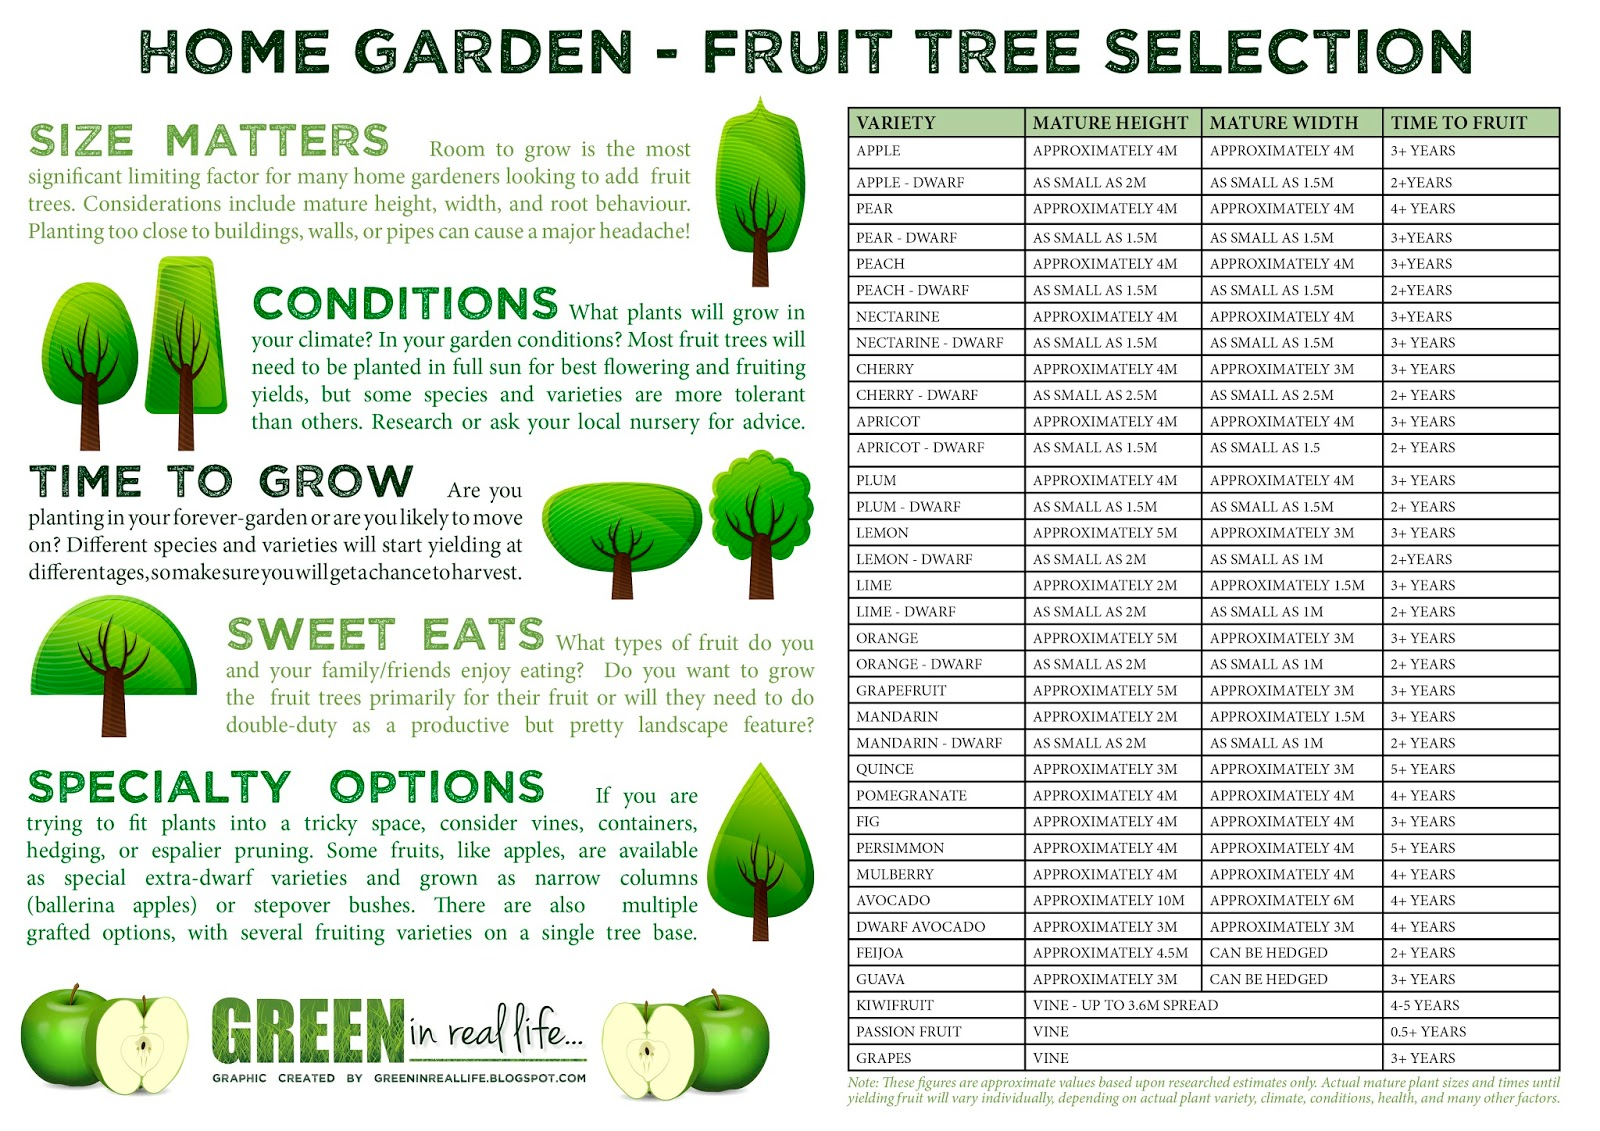 Green in Real Life Ideas for the Home Garden Fruit Tree Selection